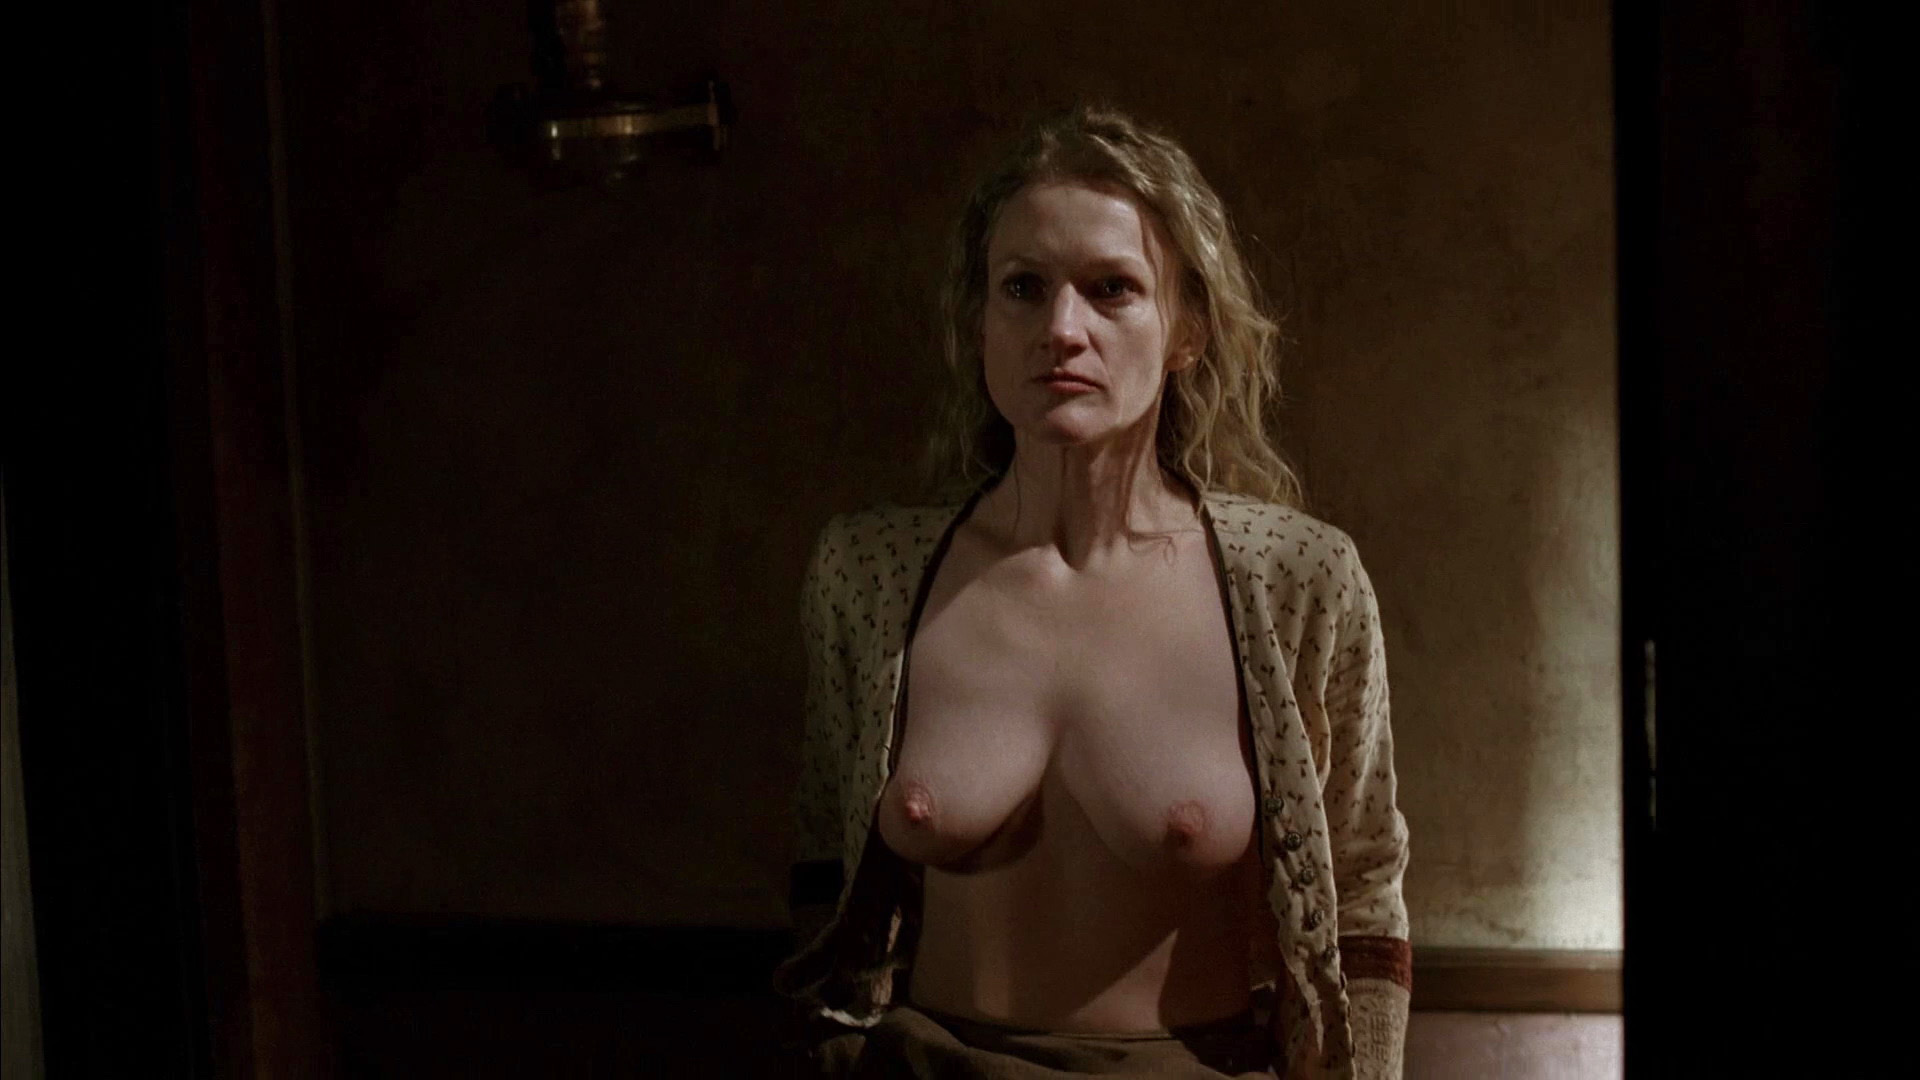 The valuable Paula malcomson nude pictures think, that